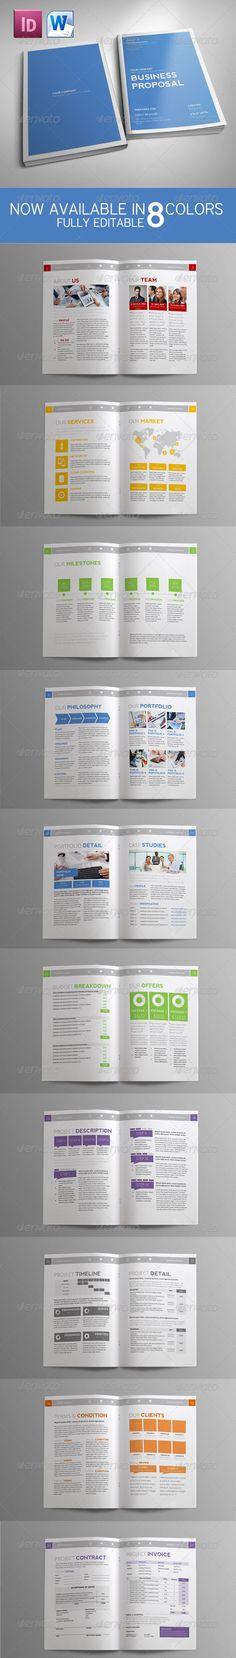 Sleman Clean Proposal Template, brochure, business, company, corporate, design, elegant, invoice, Microsoft, print, proposal, proposals, simple, template, word